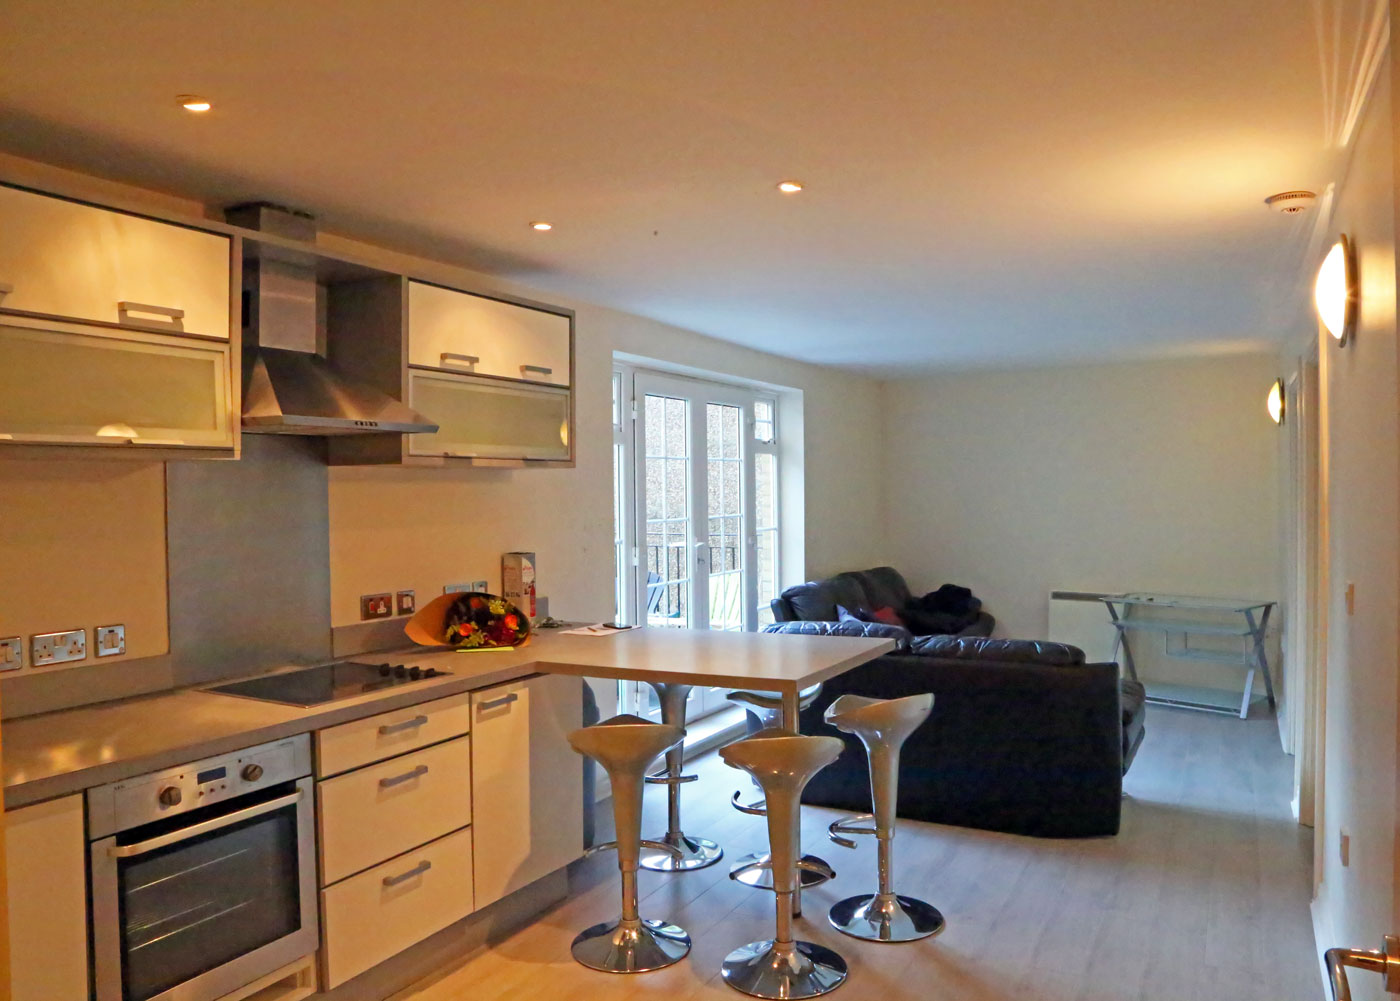 5 bedroom flat to rent in london se1. tower bridge, king's college